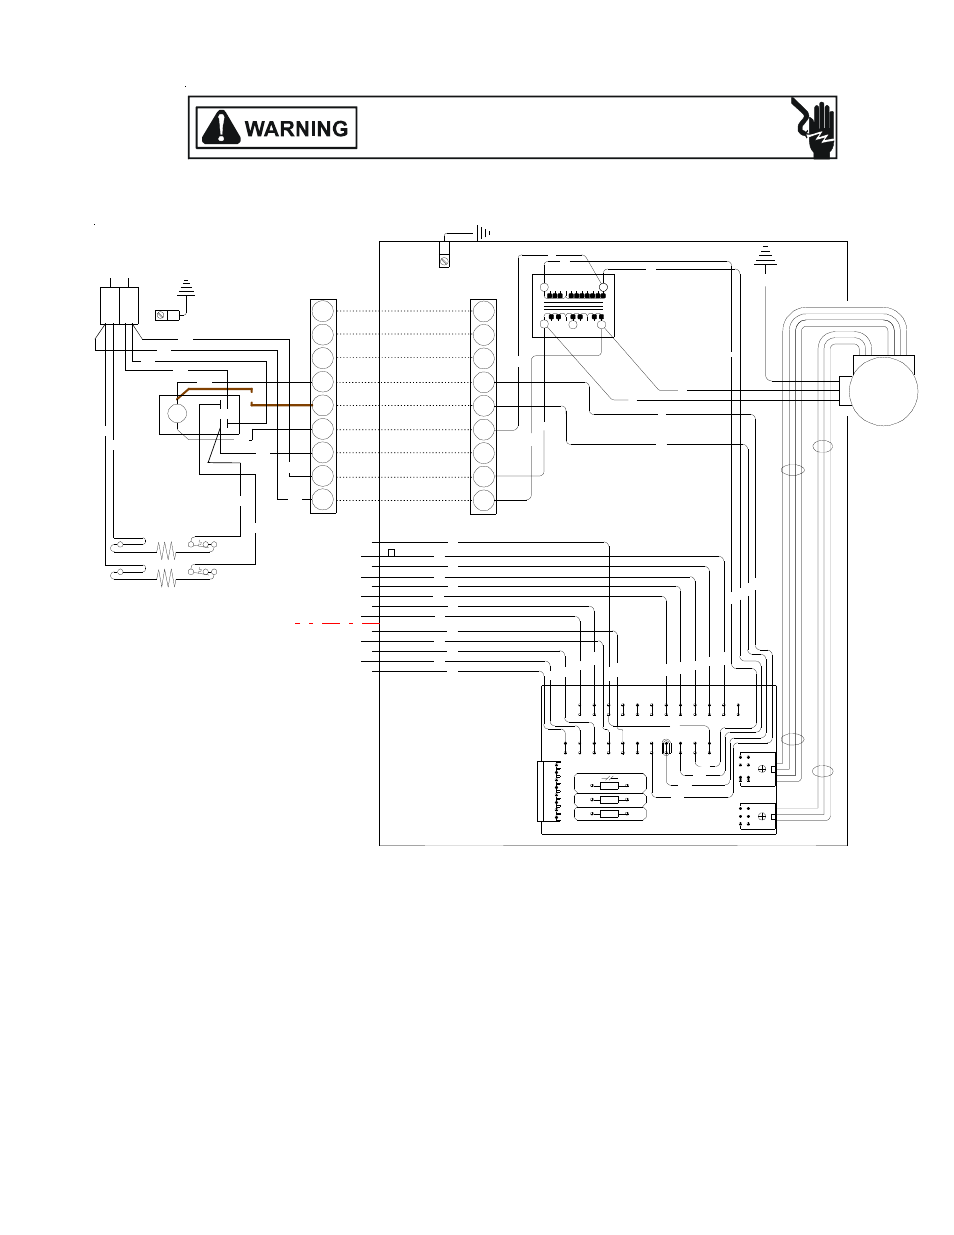 Accessories Wiring Diagrams Hkr Heat Kit Goodman Mfg Rt6100004r13 Diagram For User Manual Page 67 69